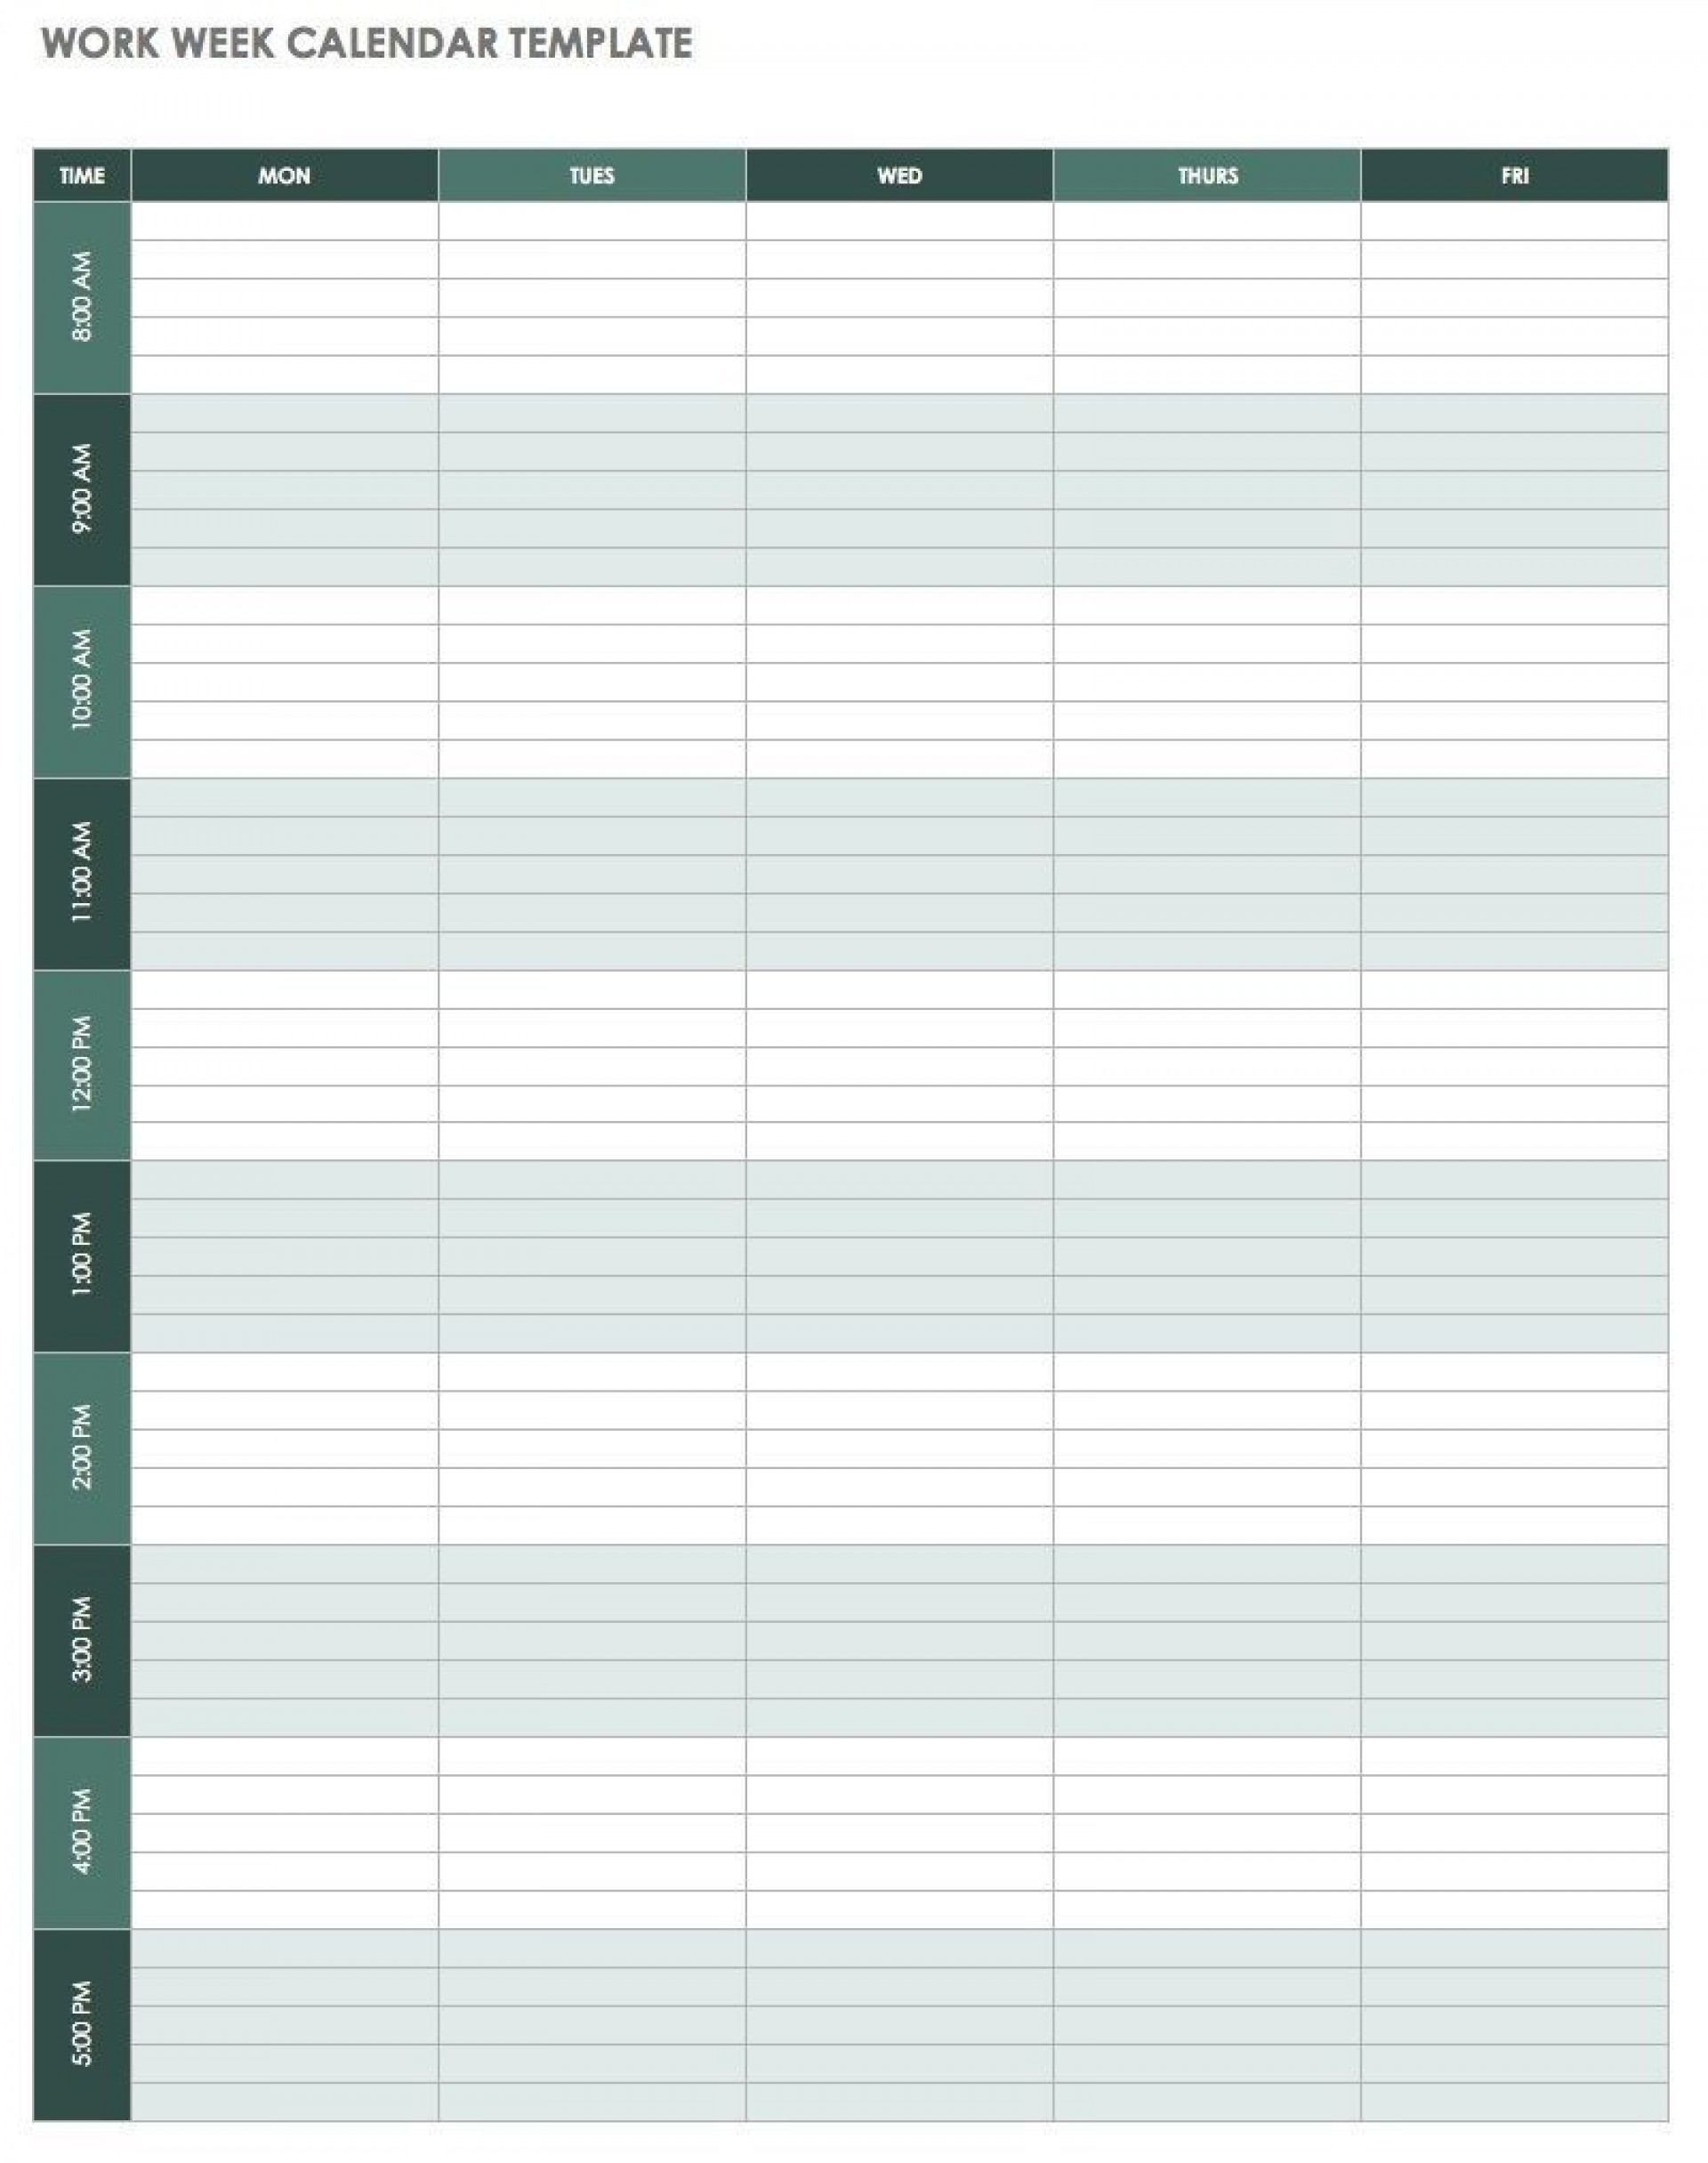 003 Simple Excel Weekly Planner Template 2019 High Definition  Holiday1920